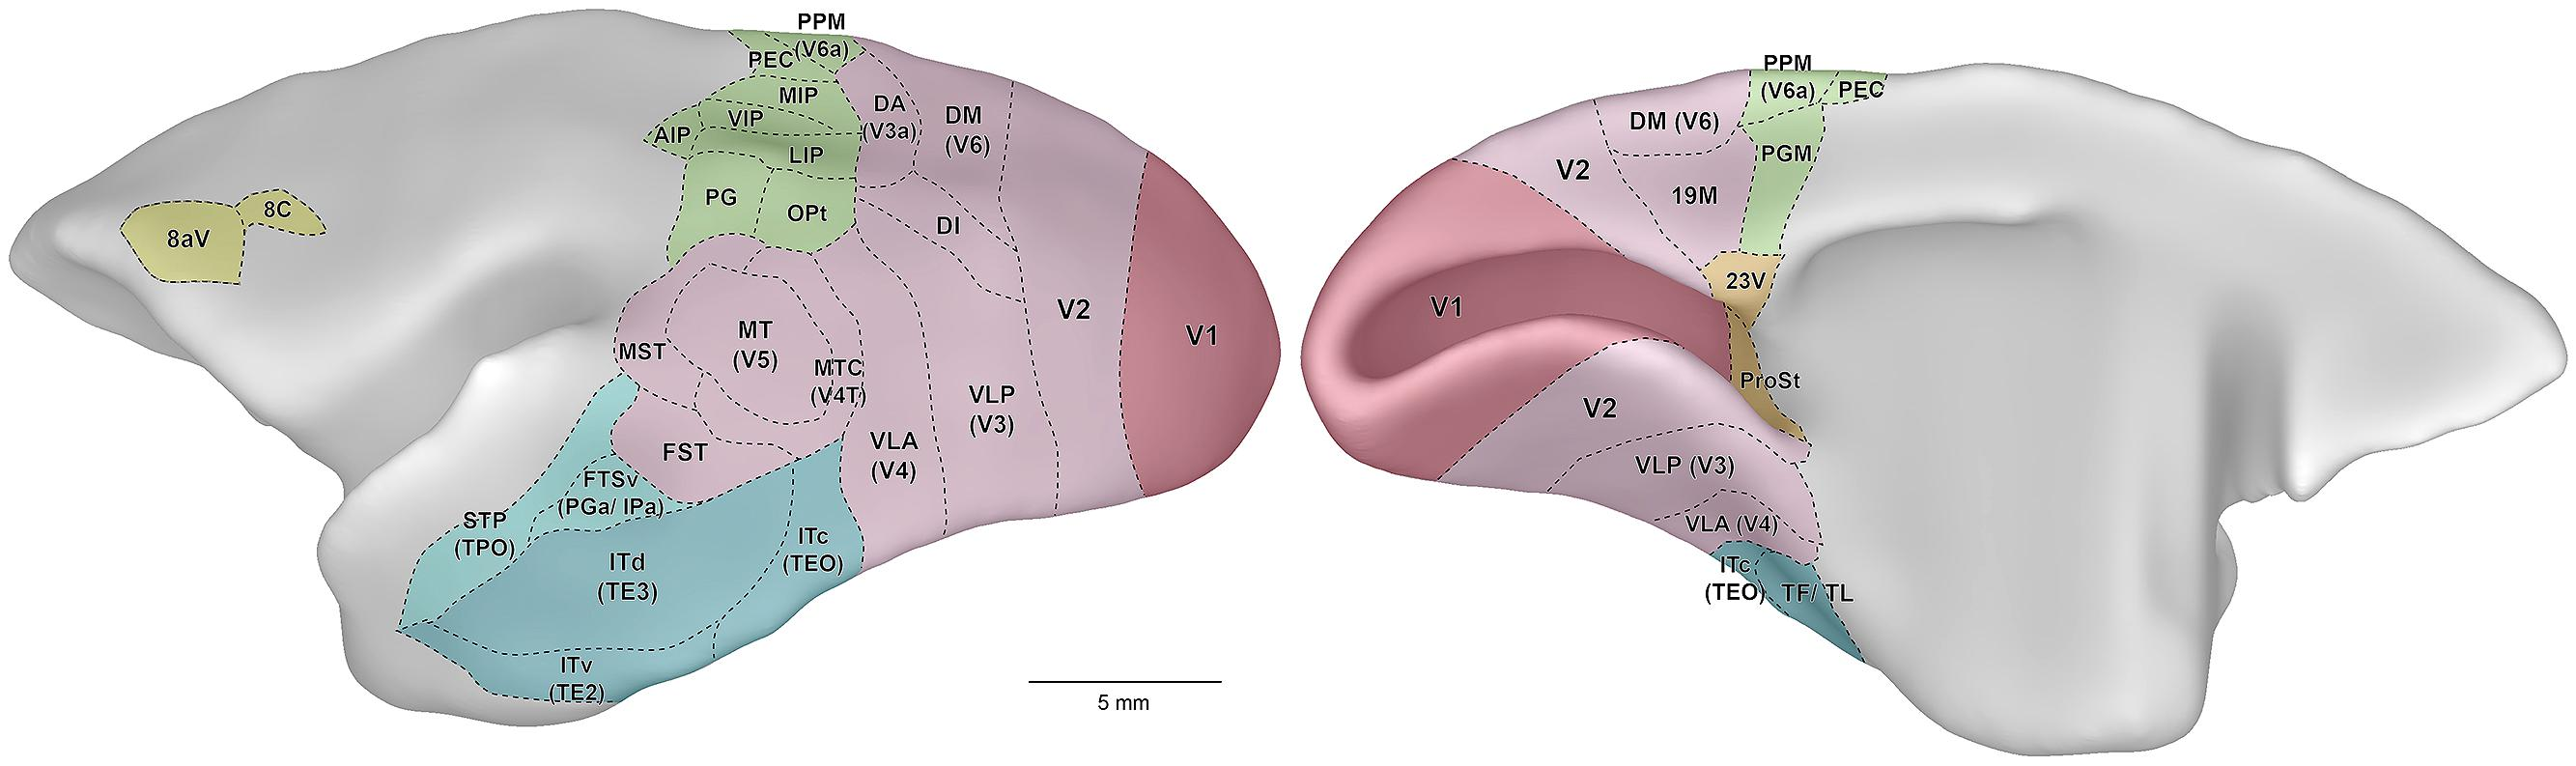 Frontiers | A simpler primate brain: the visual system of the marmoset  monkey | Frontiers in Neural Circuits